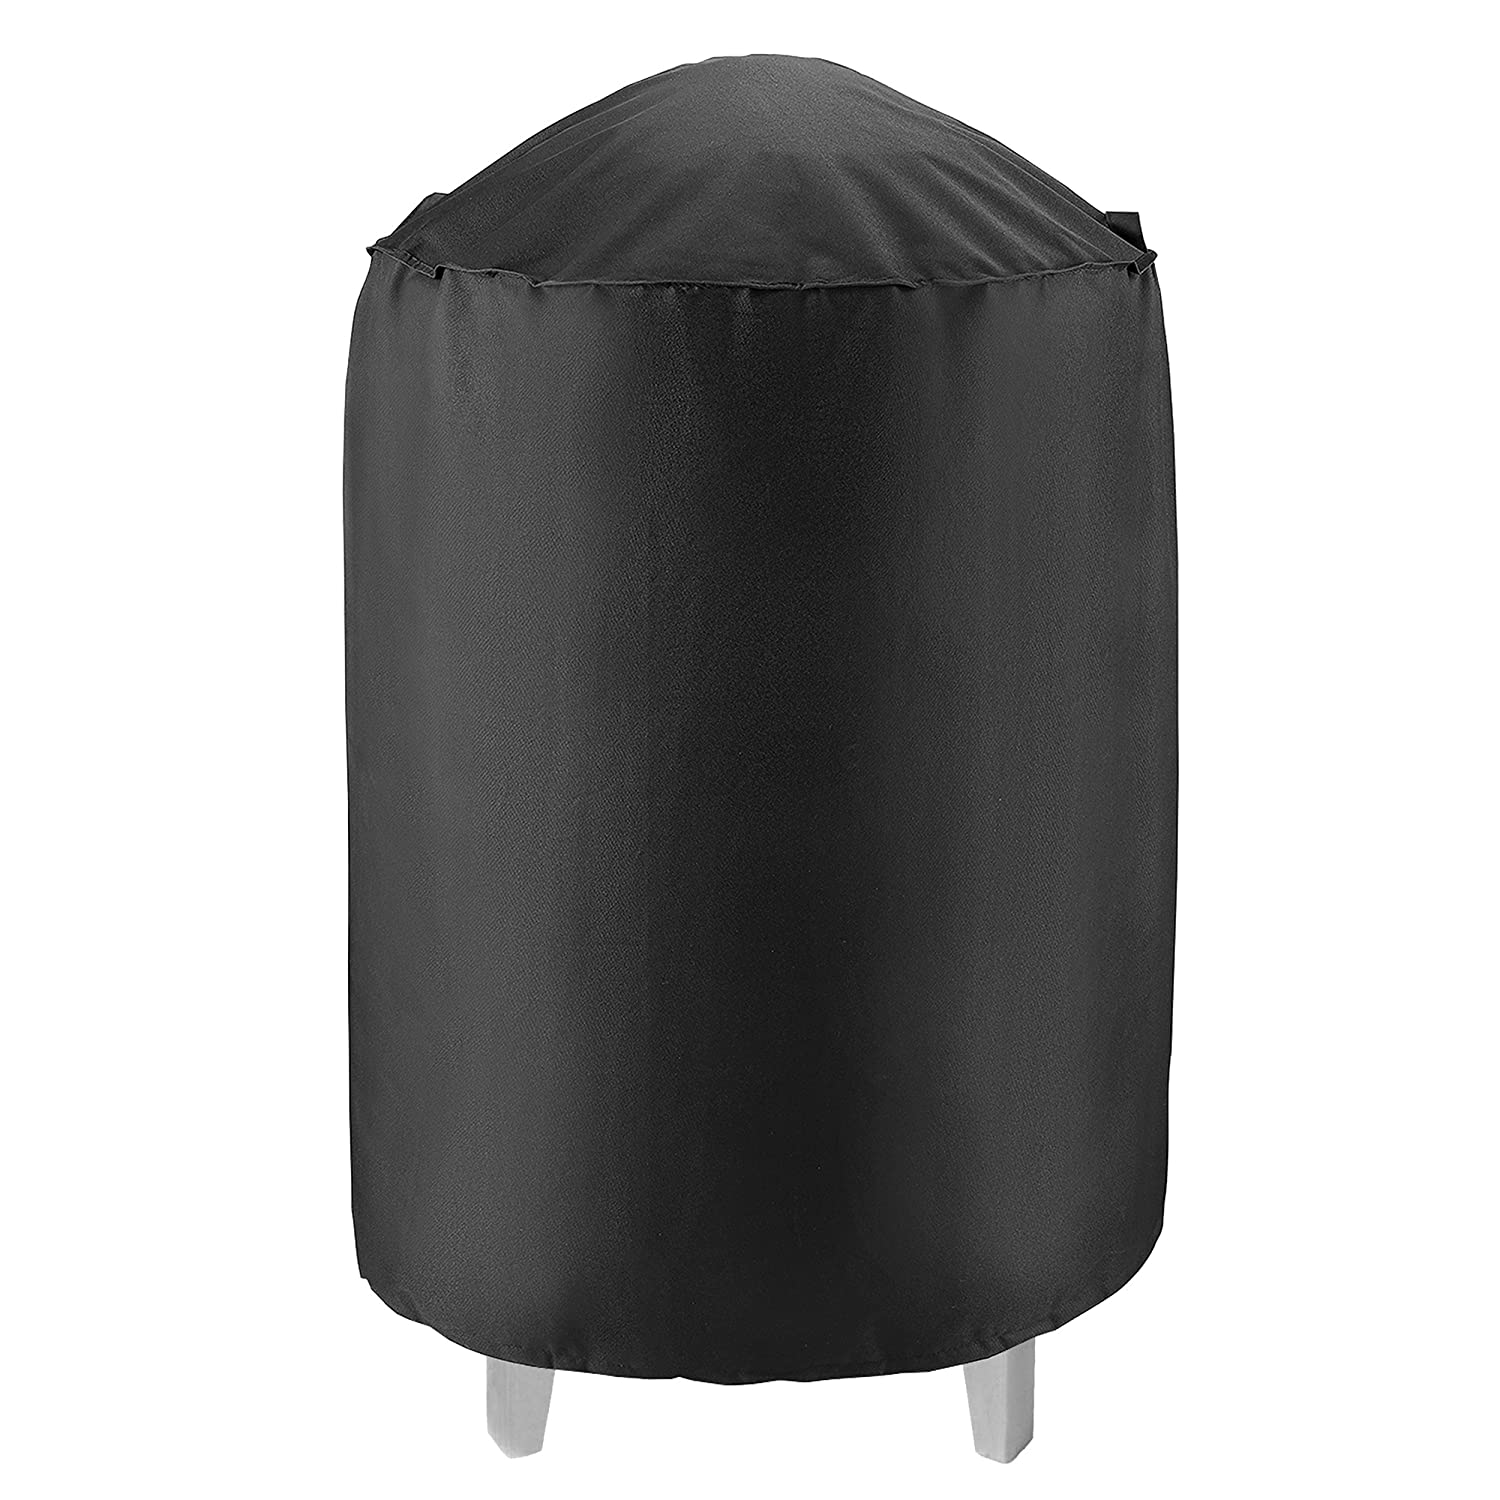 "UNICOOK Heavy Duty Waterproof Dome Smoker Cover, 30"" Dia by 36"" H,Kettle Grill Cover, Barrel Cover,Water Smoker Cover,Fit Grill/Smoker for Weber Char-Broil and more"